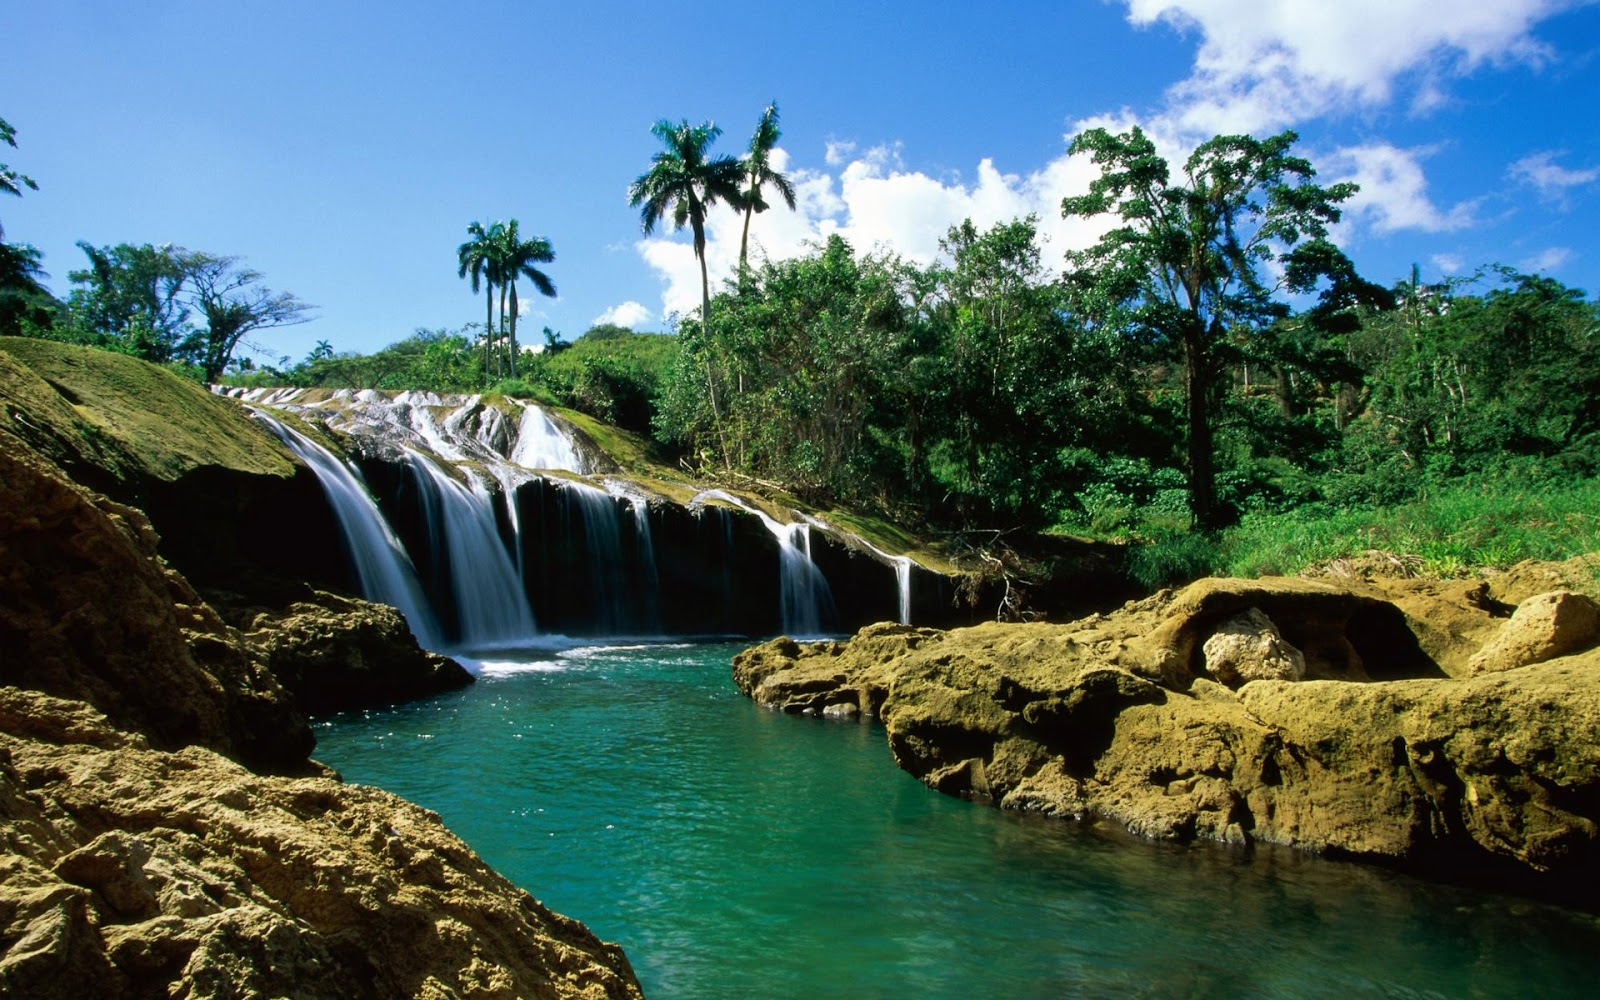 waterfall live wallpaper for android downlaod 3d waterfall 1600x1000